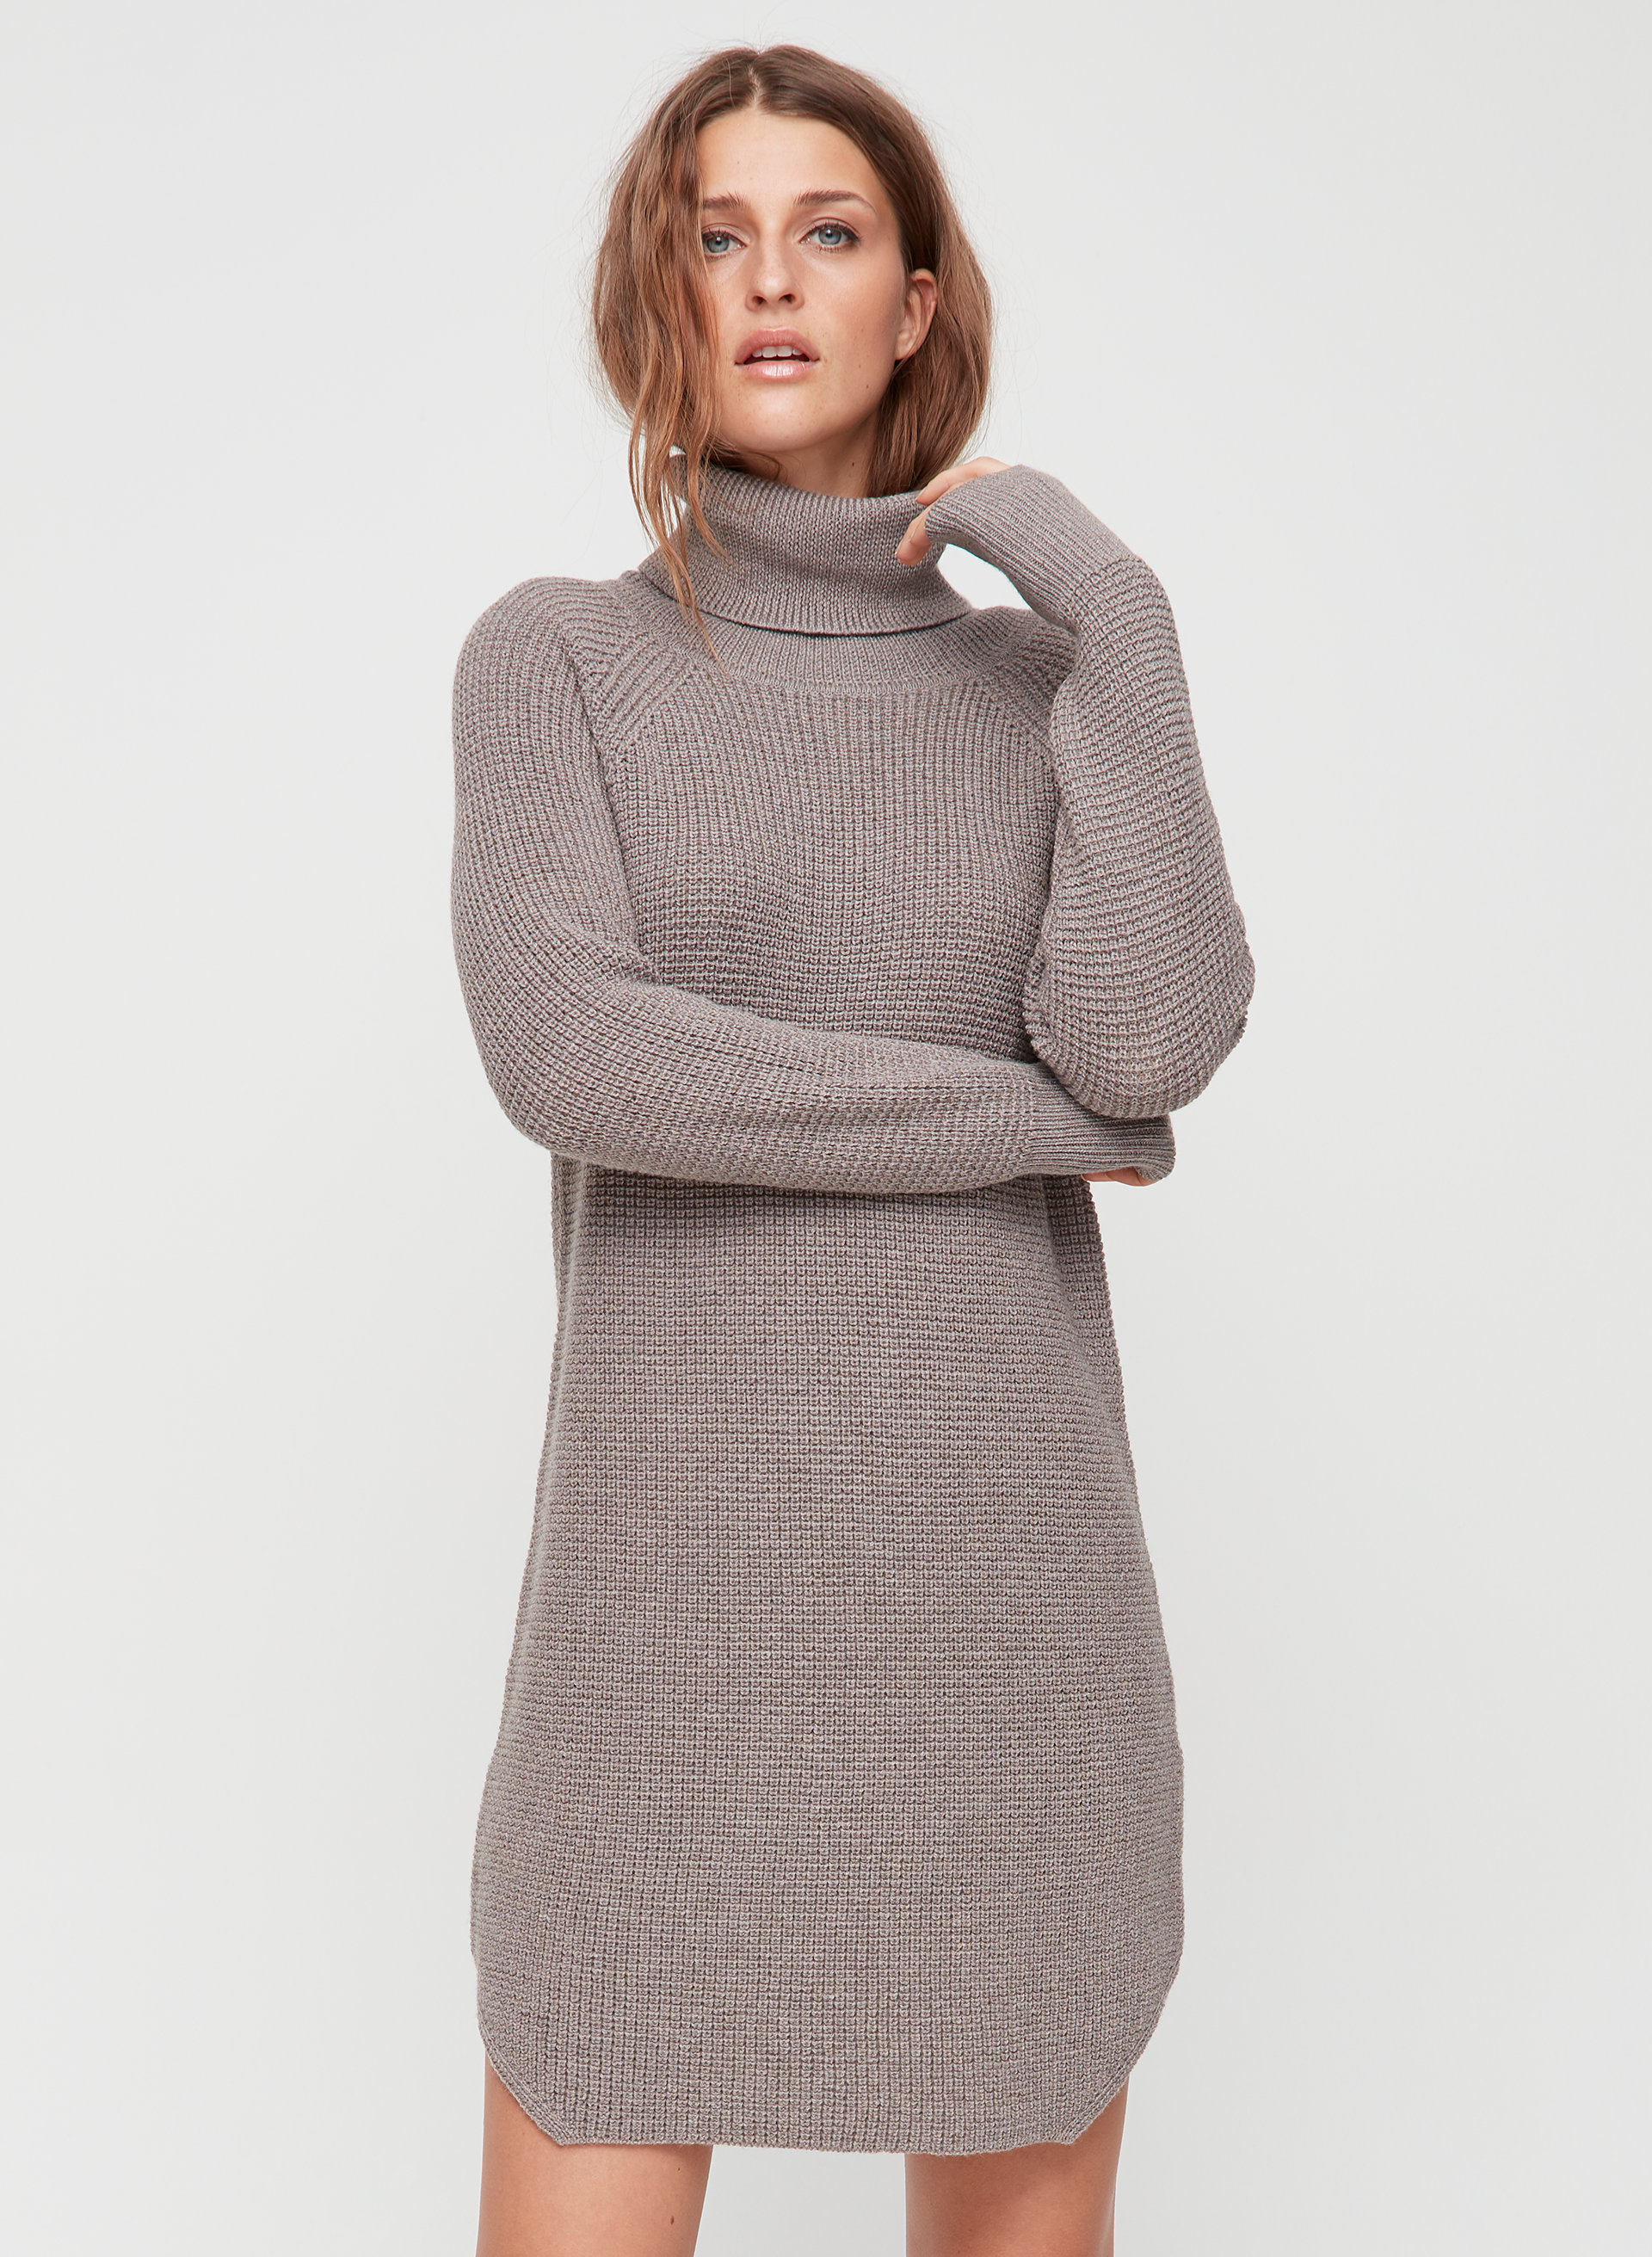 53be01af79da5 bianca dress Knitted, turtleneck sweater dress